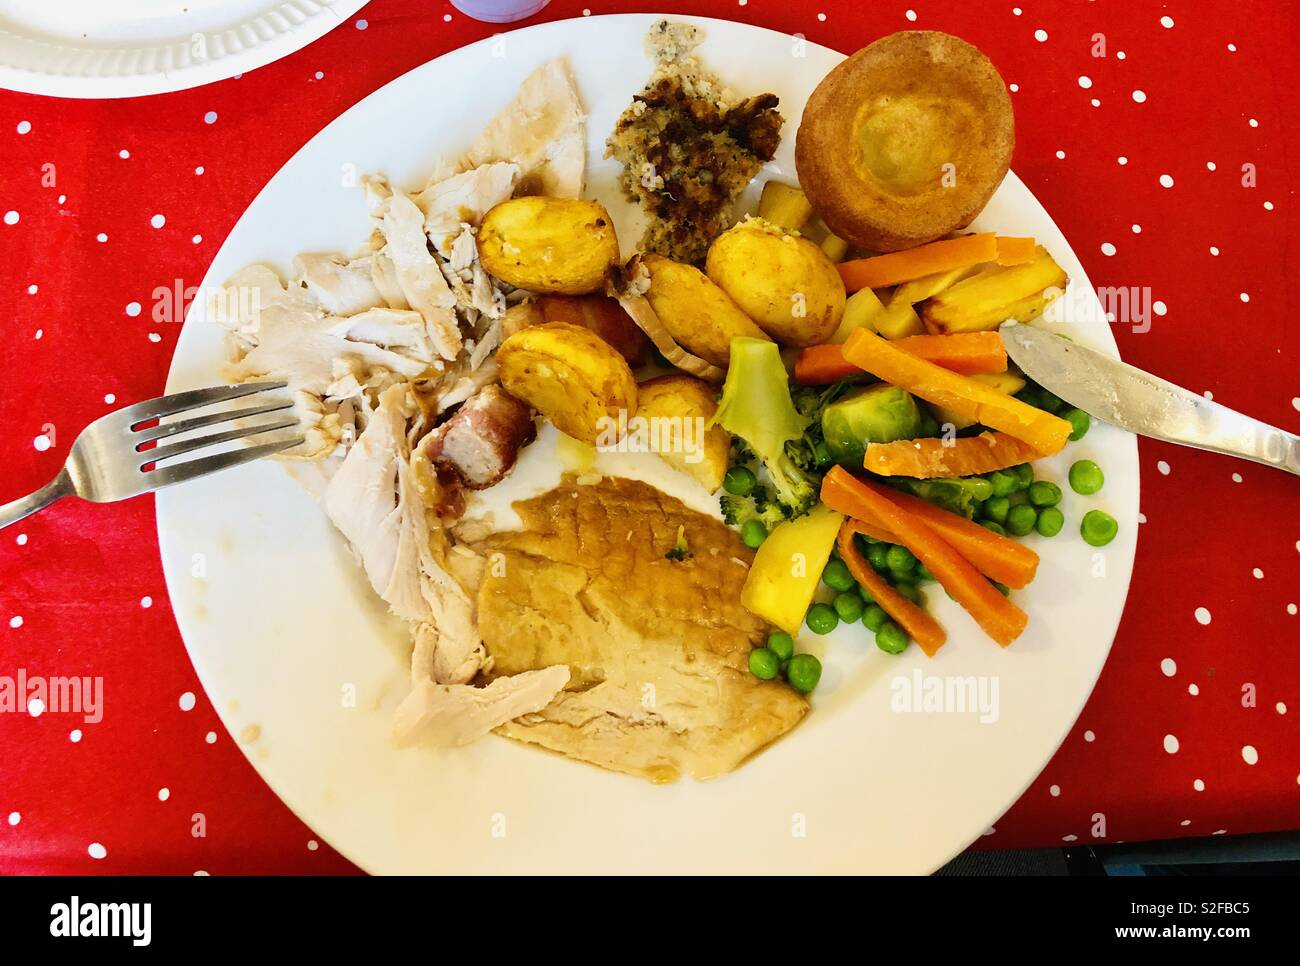 Traditional English Christmas Dinner.Traditional English Christmas Dinner With Turkey Rosters